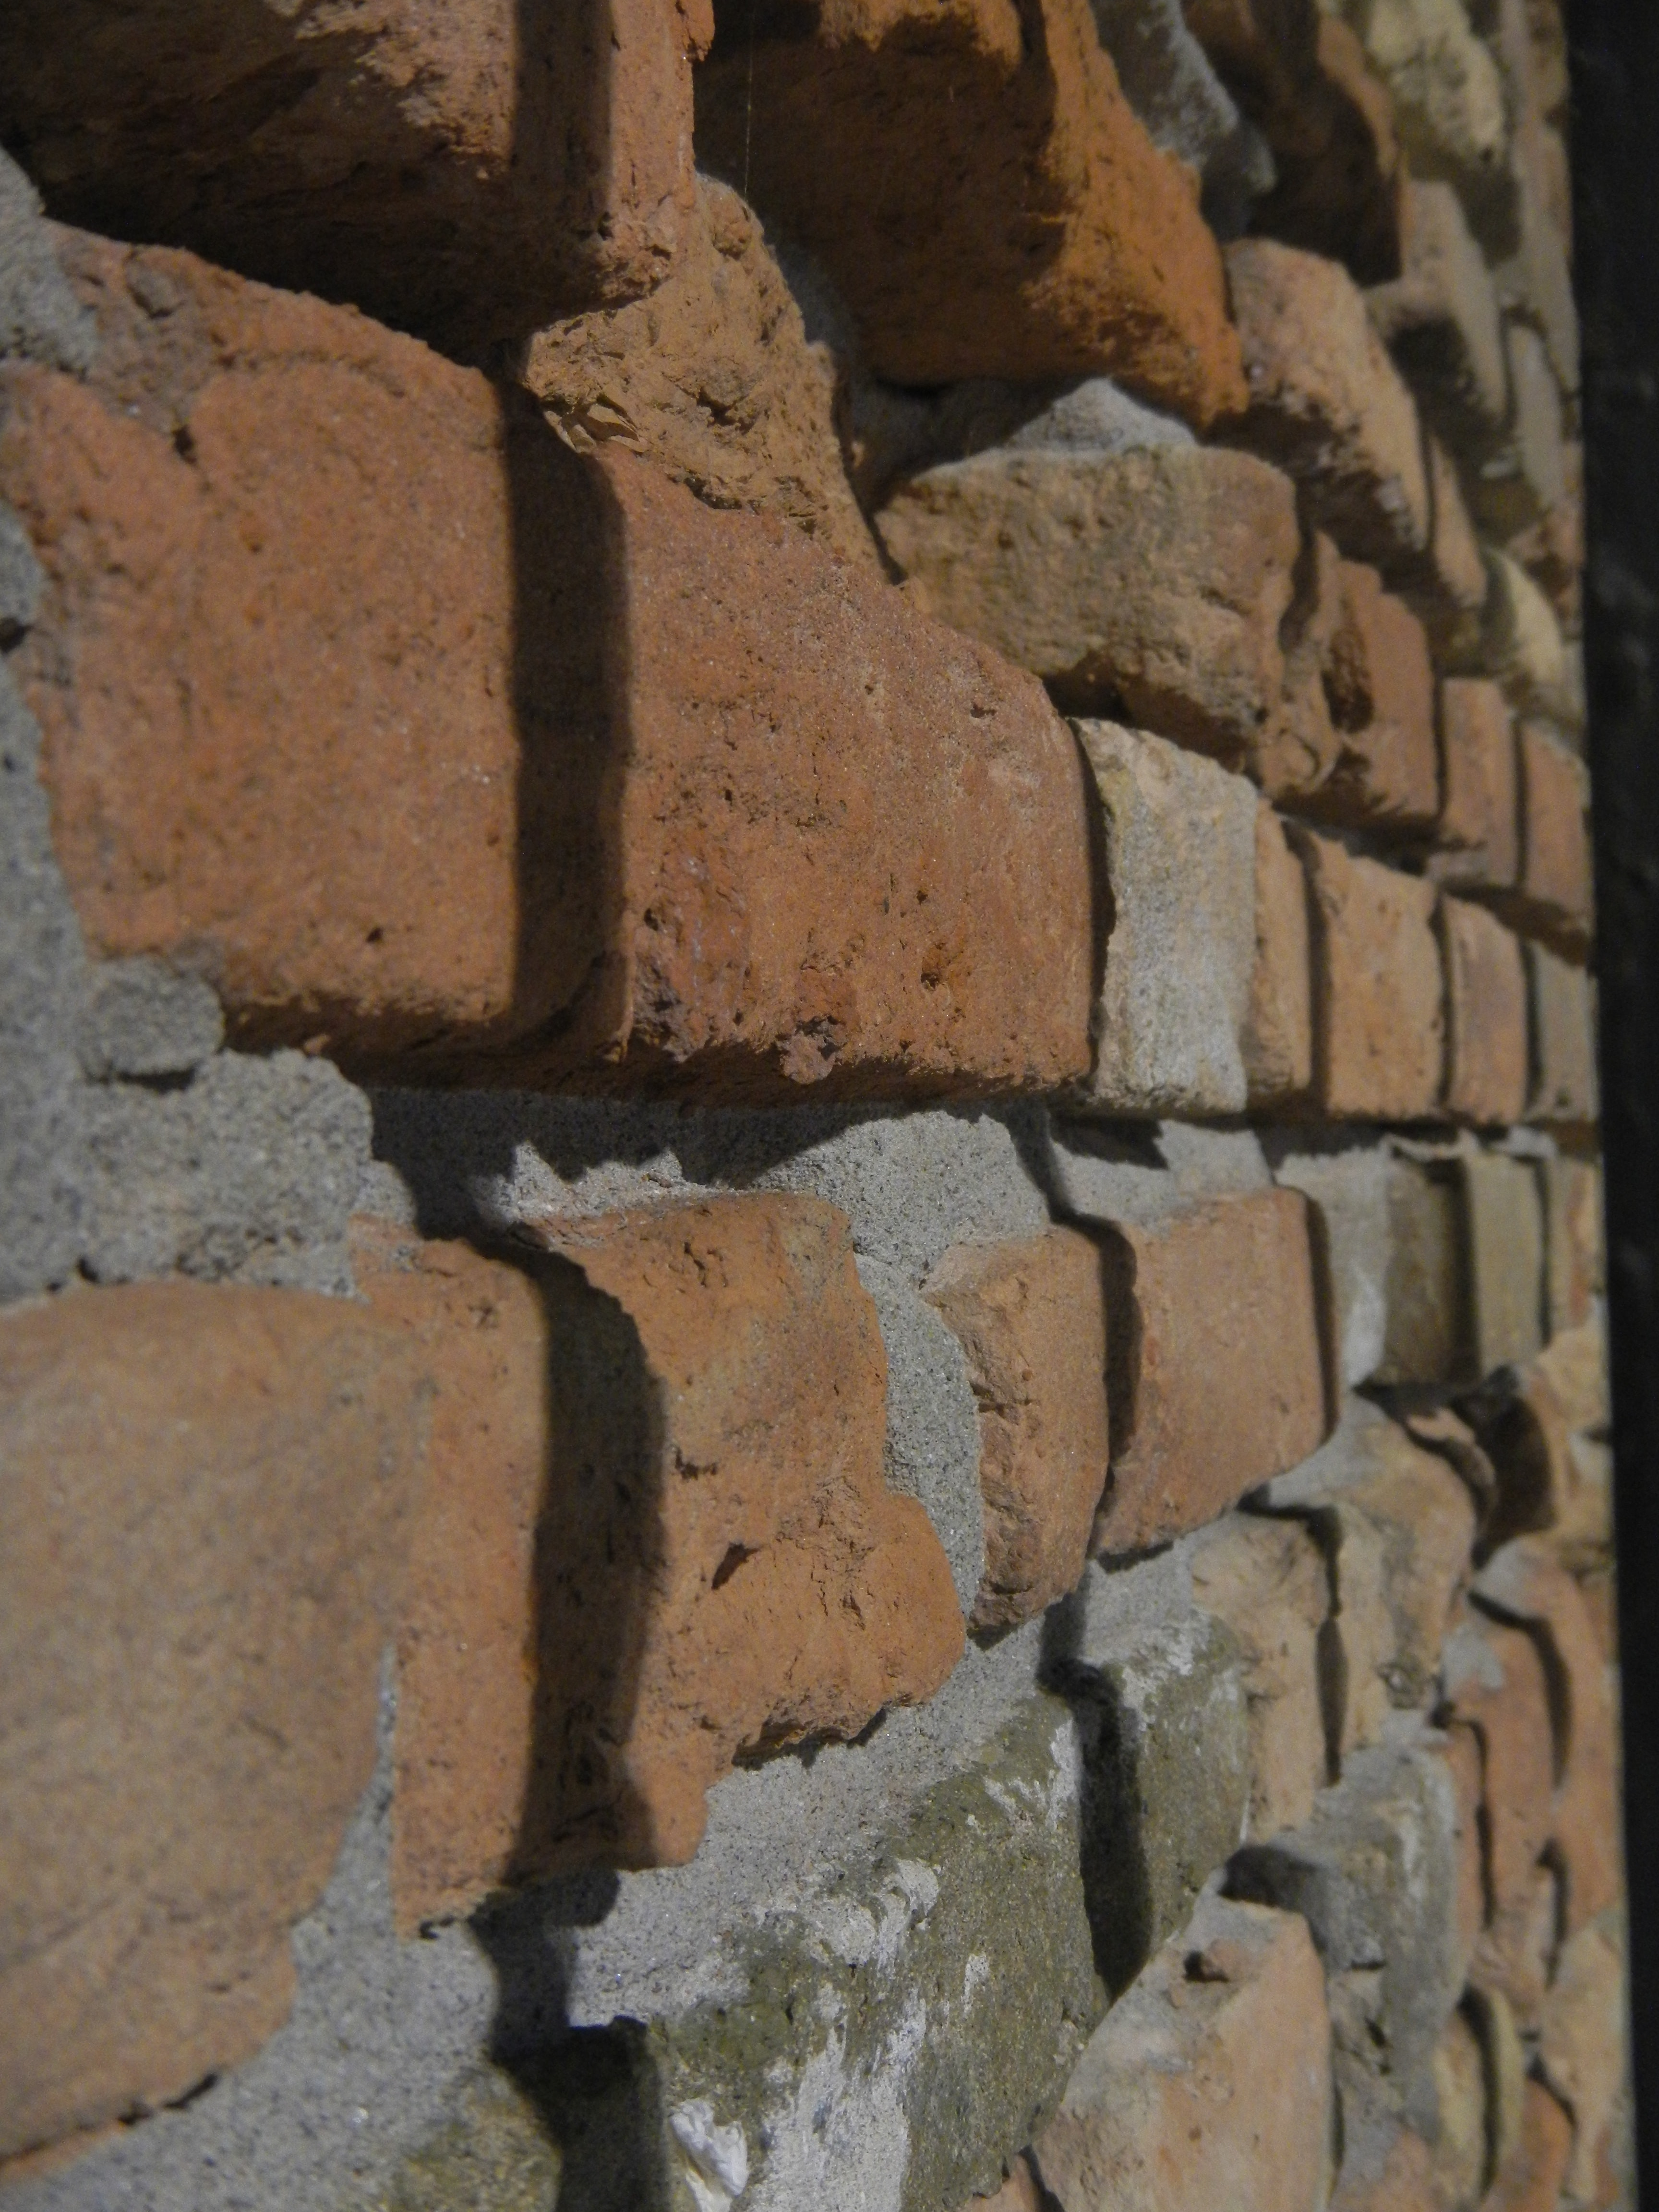 A macro shot from the side, capturing a traditional brick wall.